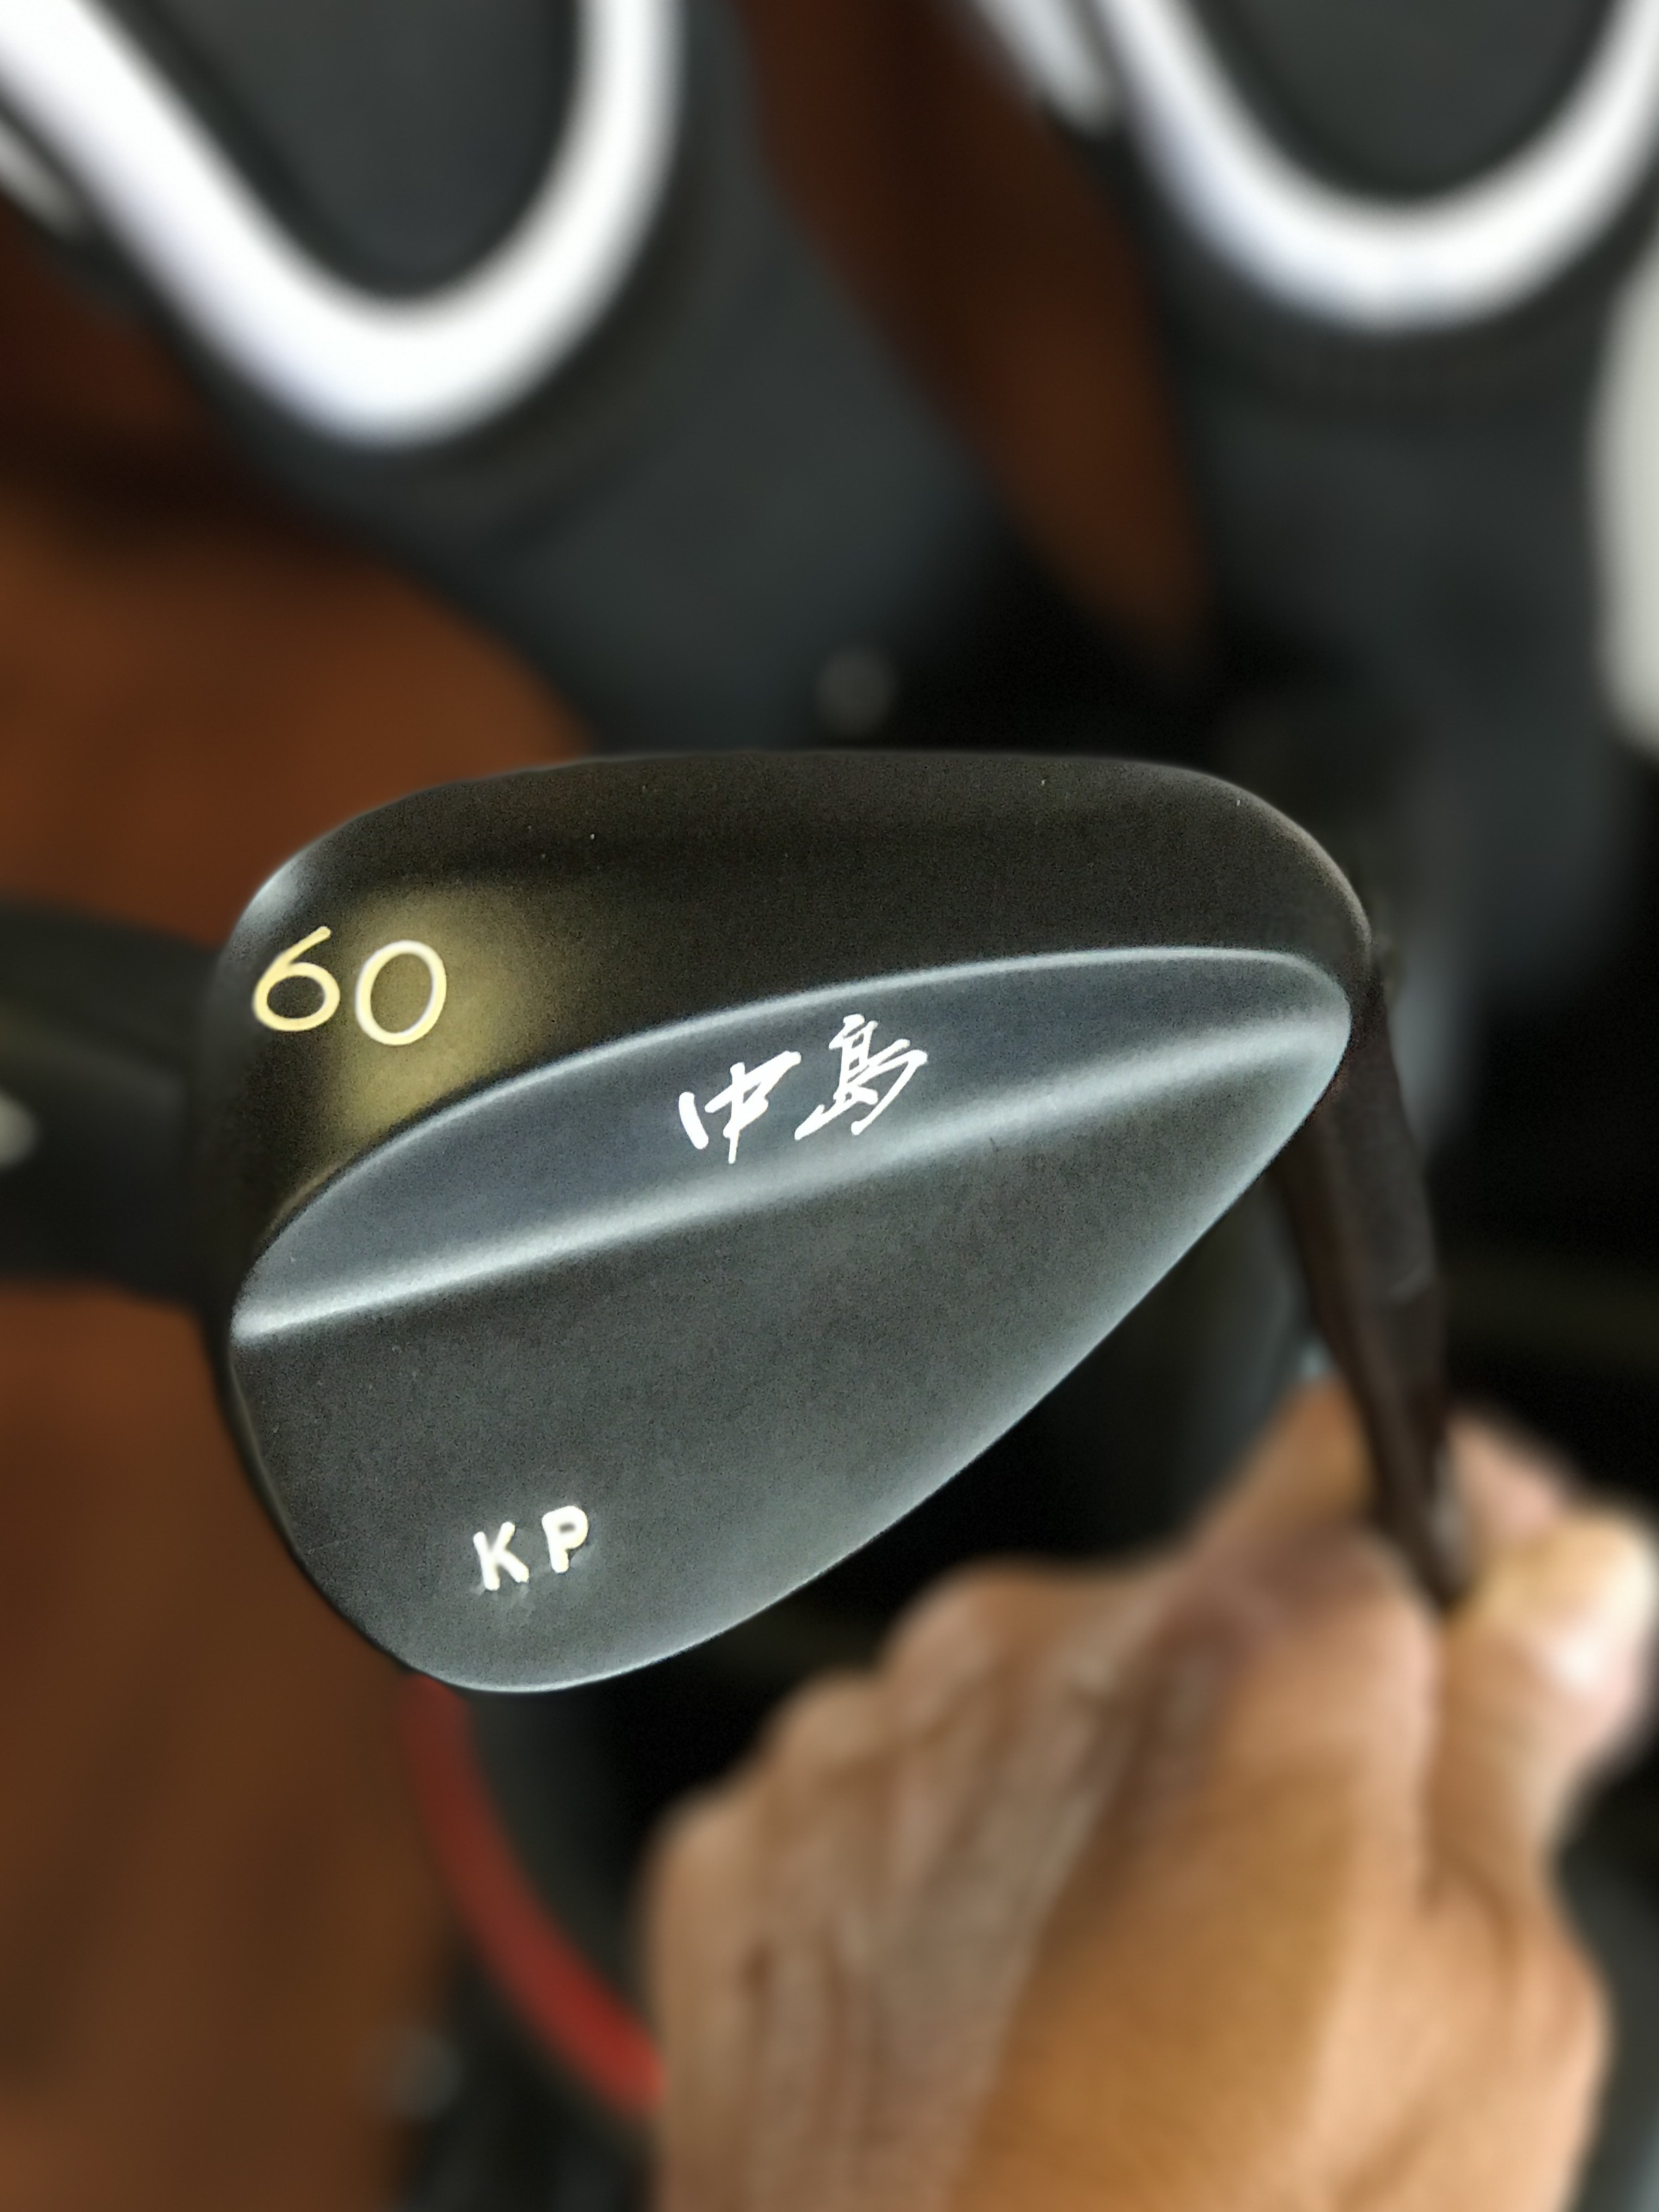 Black Ninja TG60 Wedge (TG=Tour Grind)